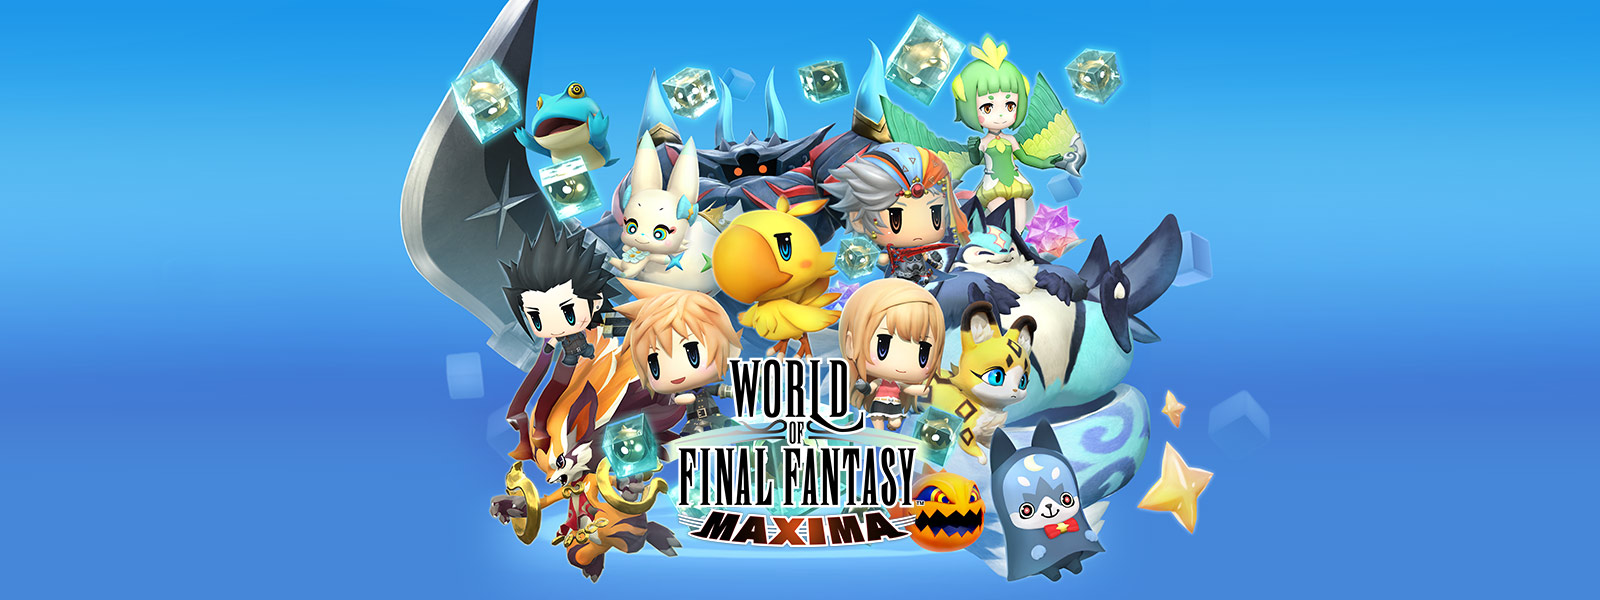 WORLD OF FINAL FANTASY MAXIMA, personagens a saltar do centro do ecrã